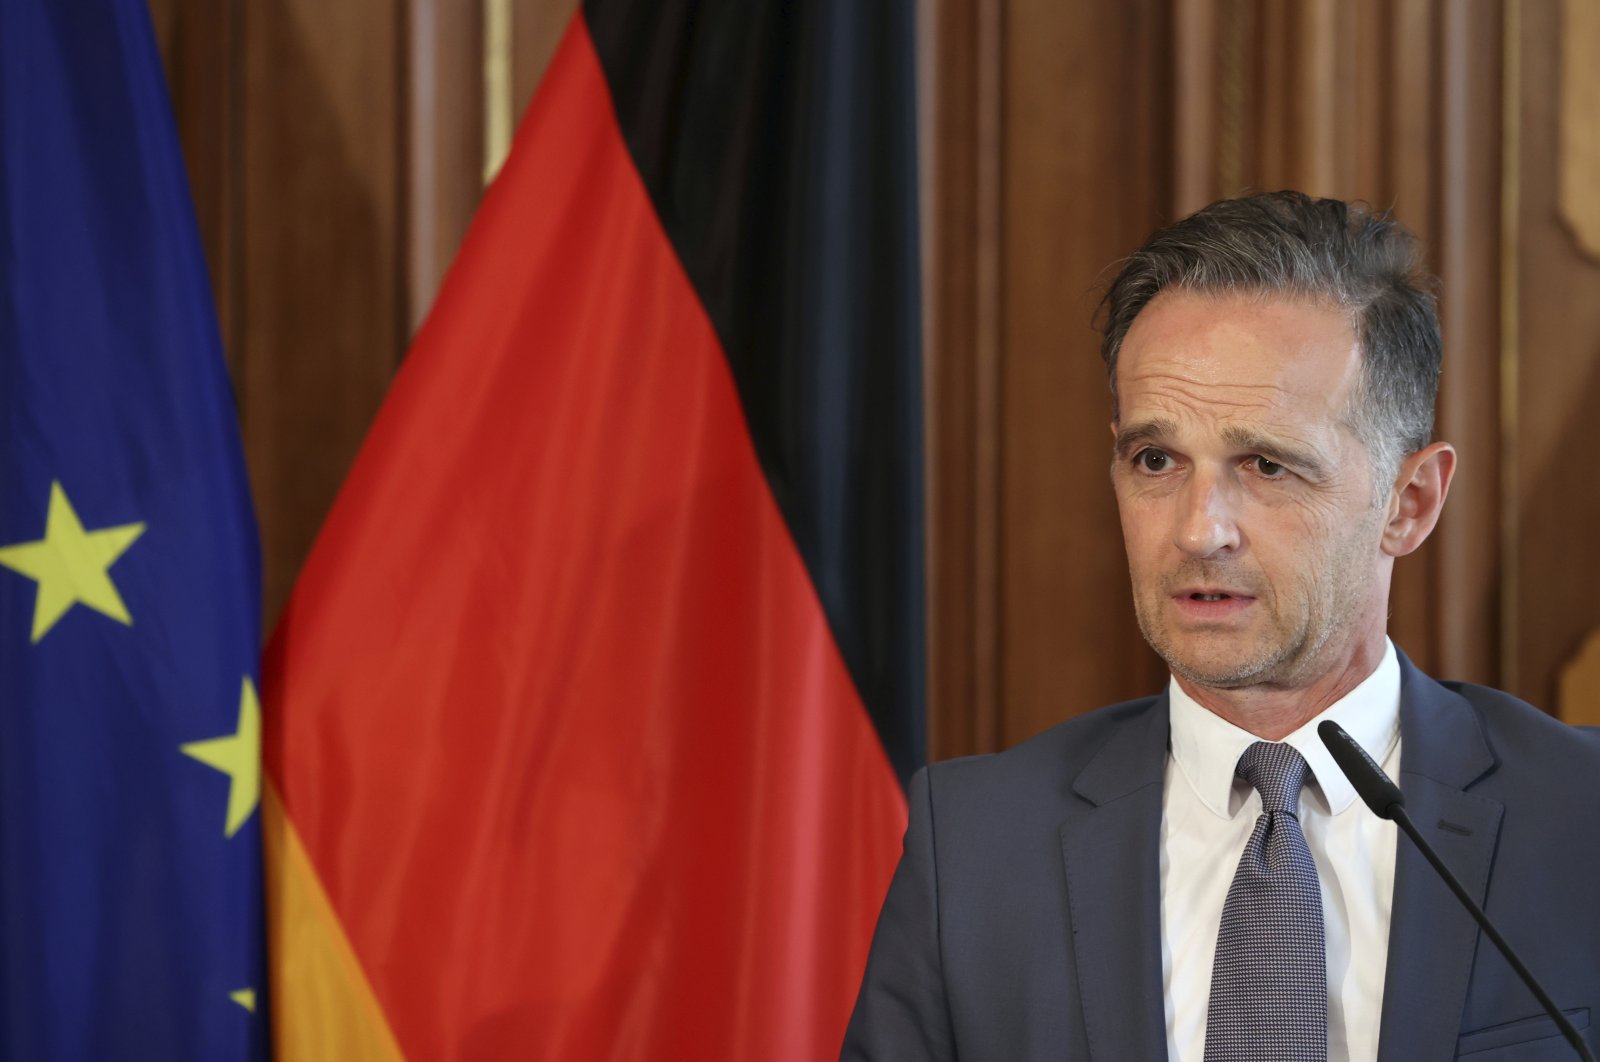 German Foreign Minister Heiko Maas addresses the media during a joint news conference with Norway's Foreign Minister Ine Marie Eriksen Soreide in Berlin, Germany, Aug. 13, 2020. (AP Photo)